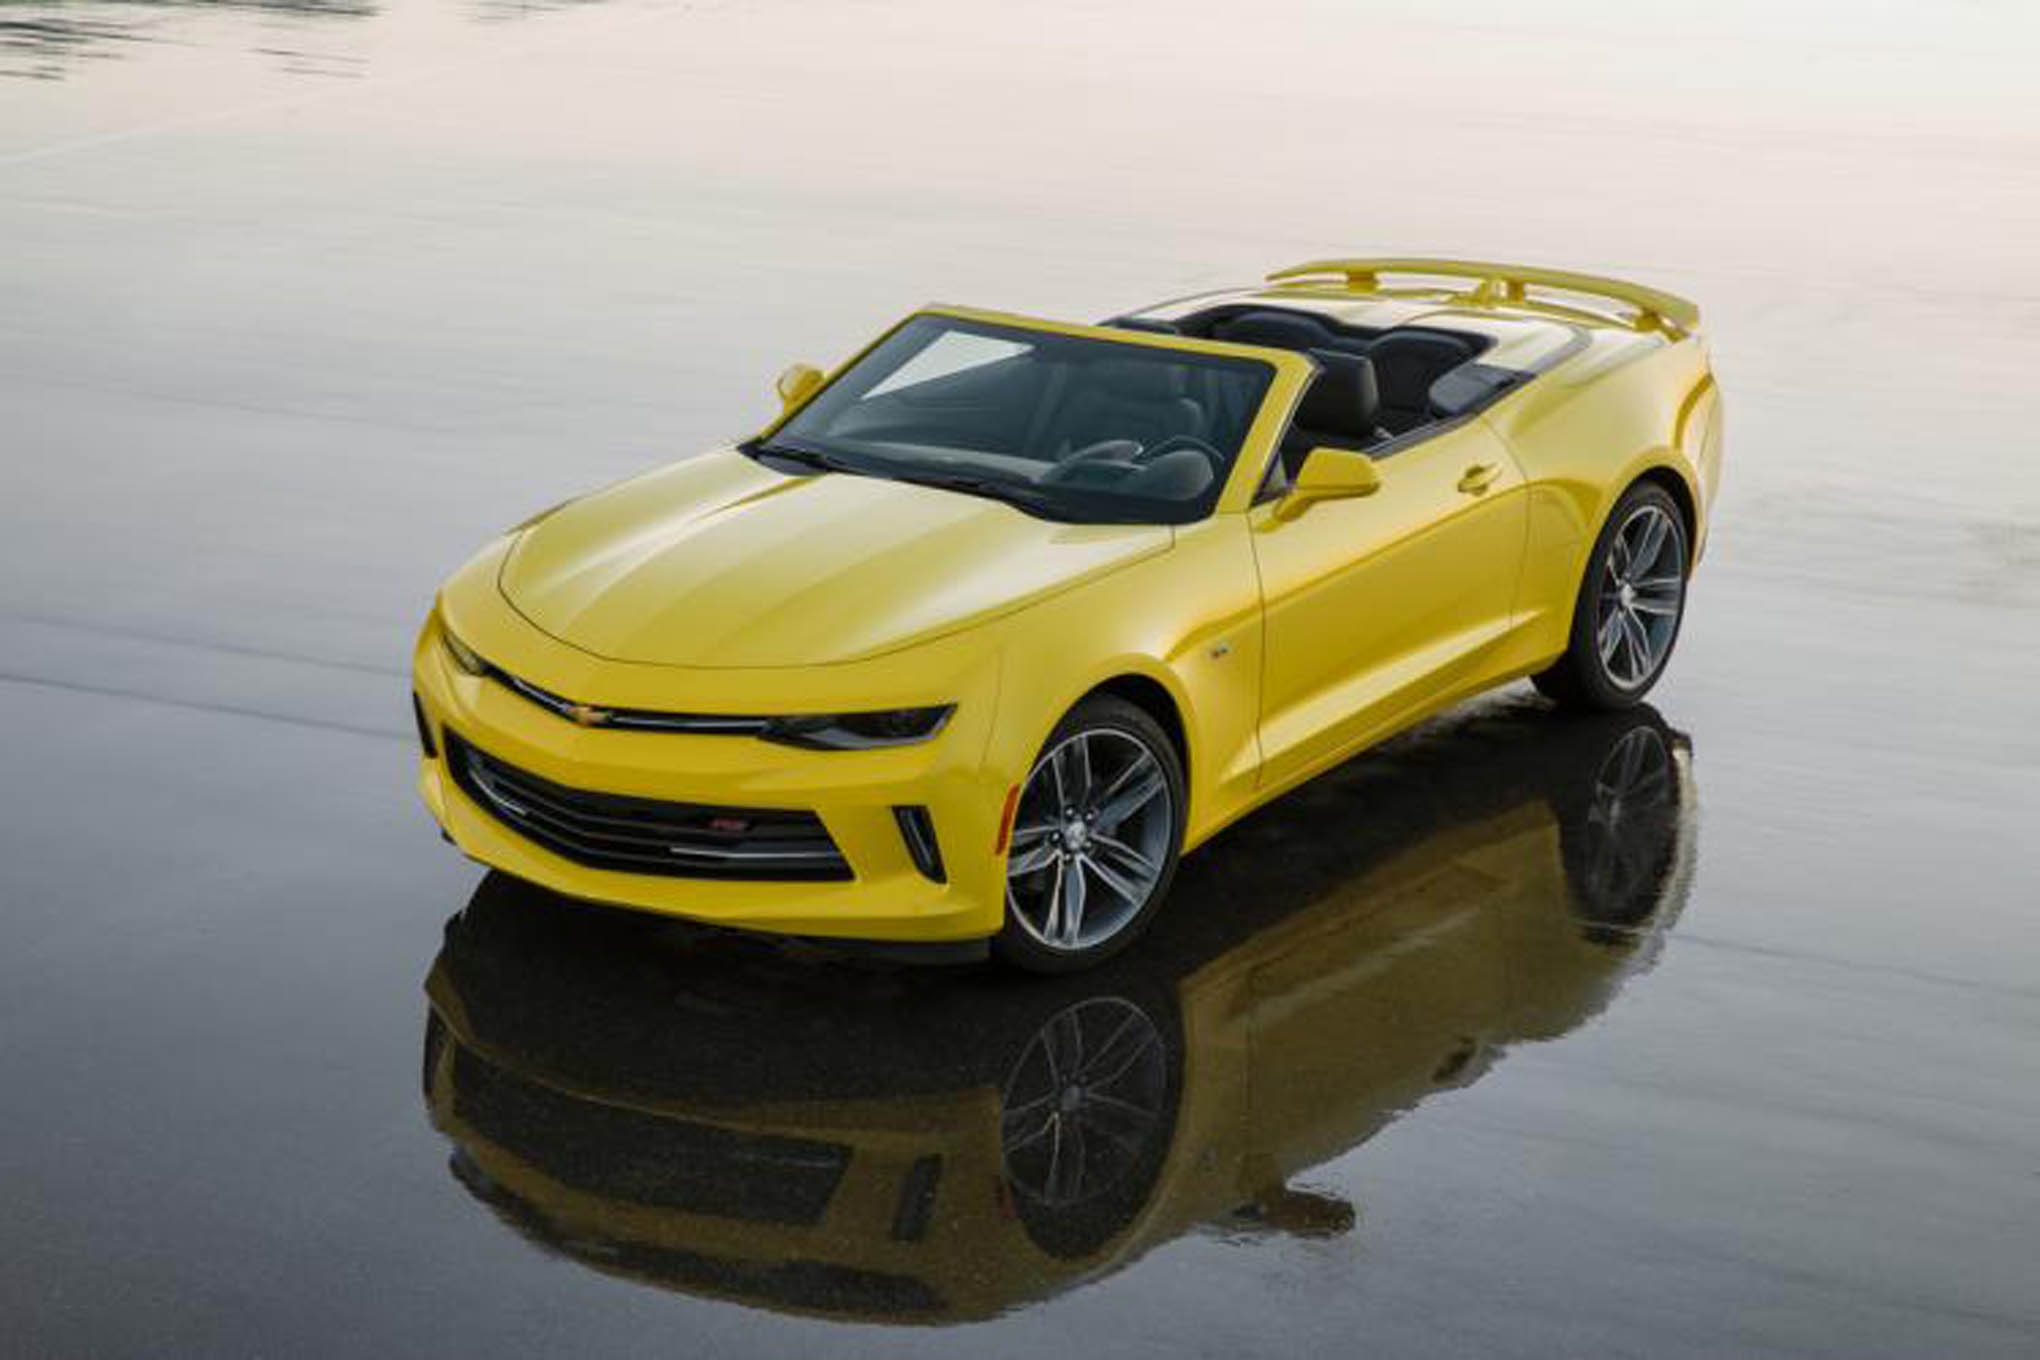 2016 Camaro Convertible First Drive - Hot Rod Network